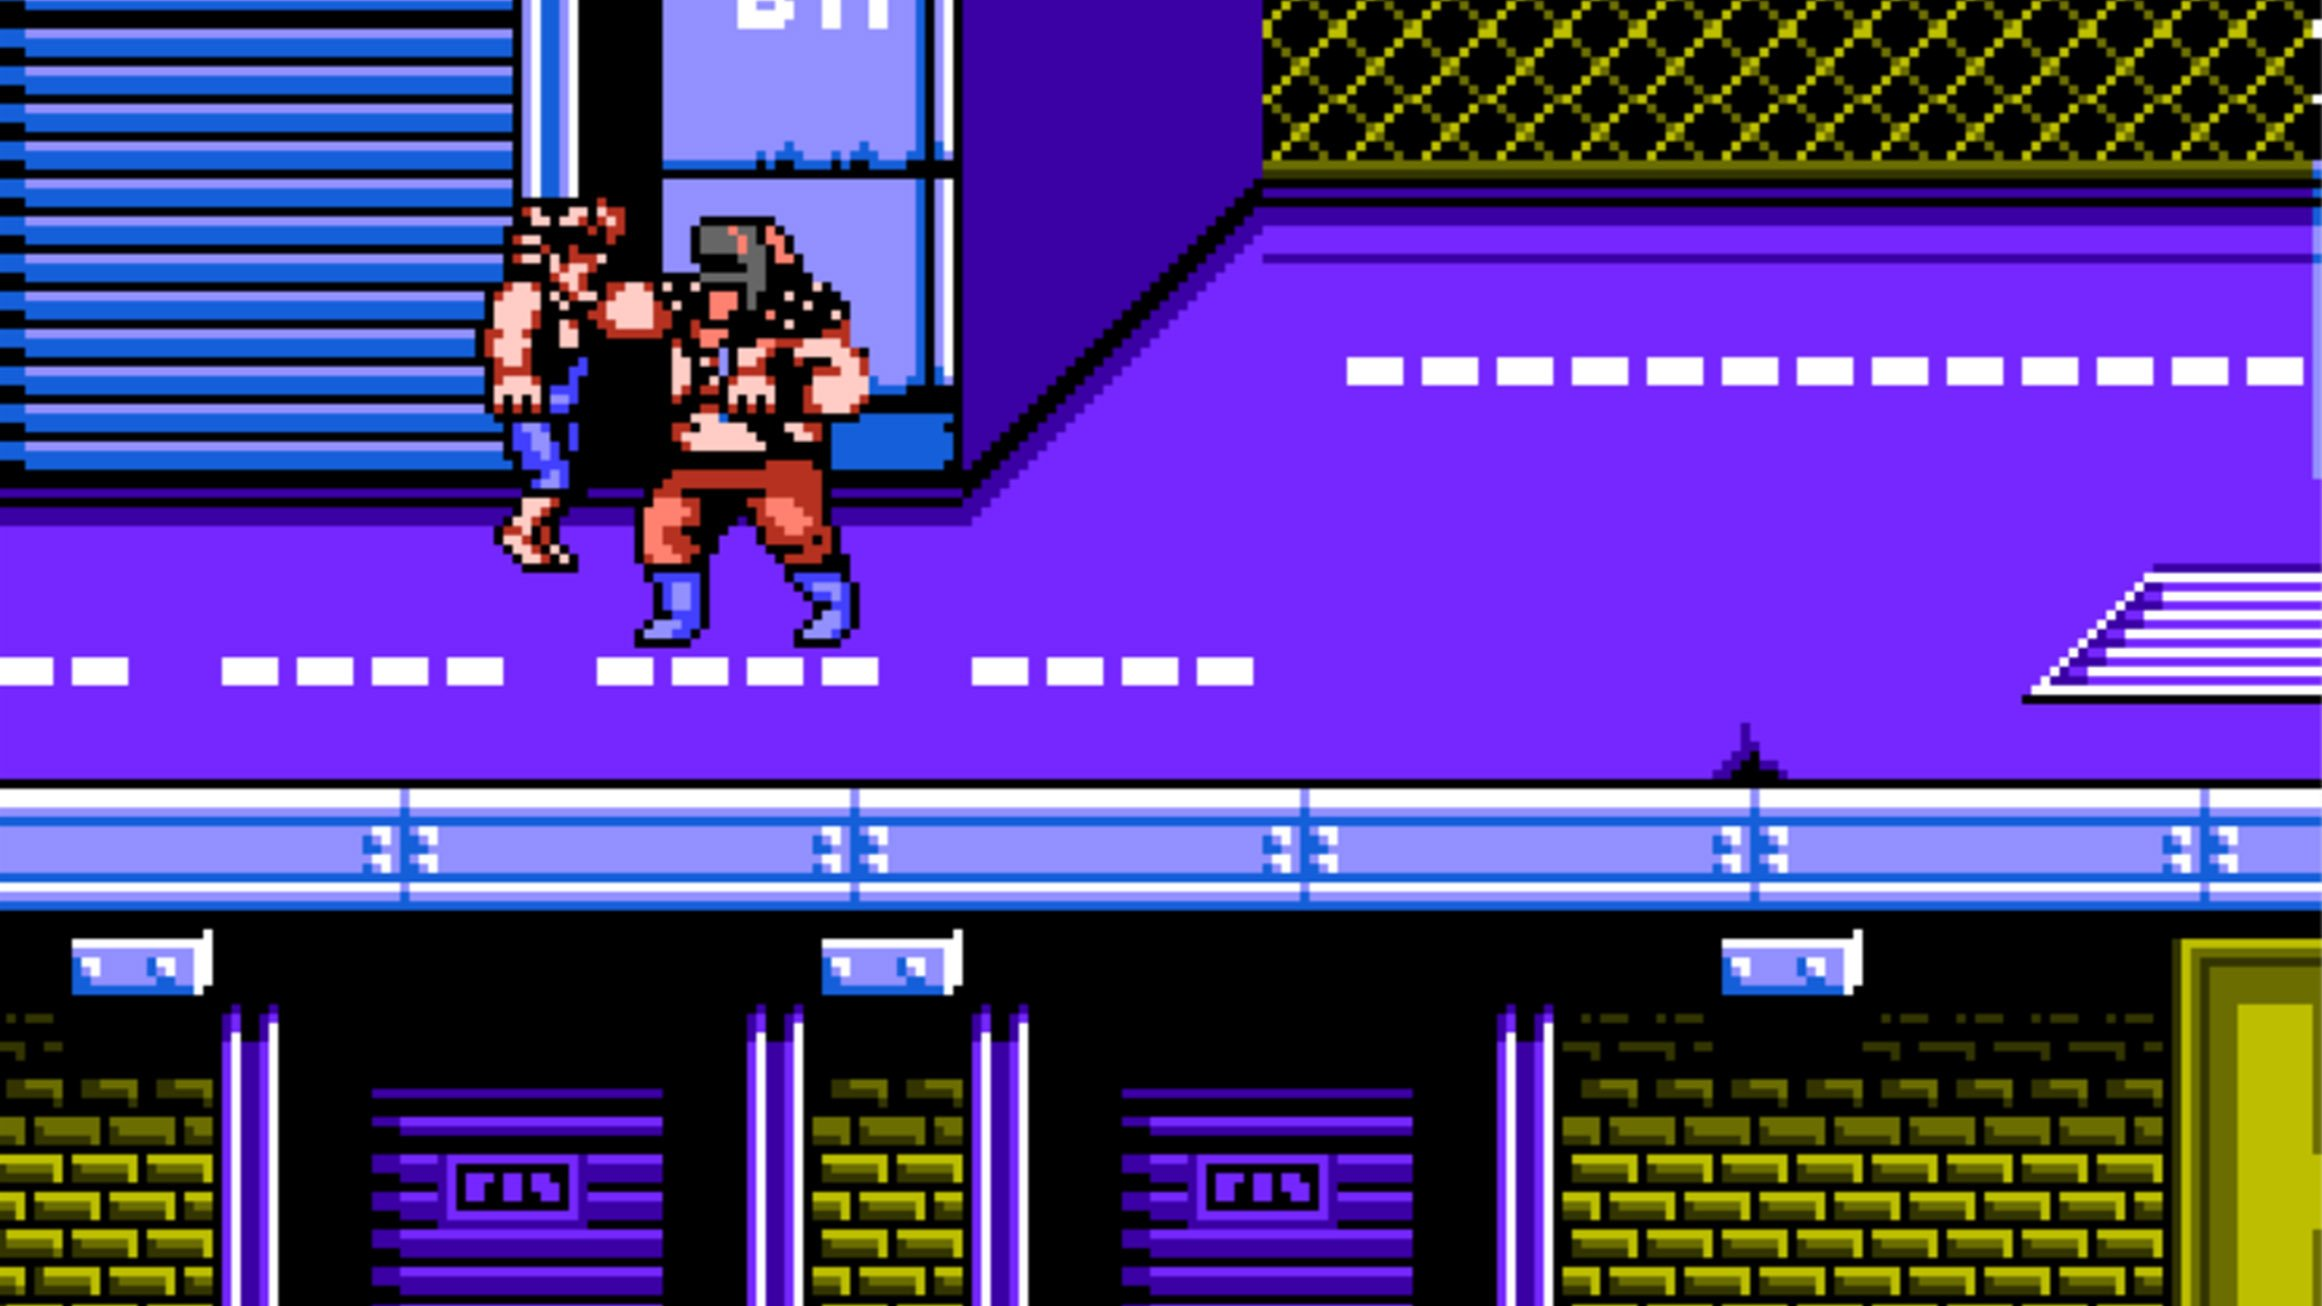 Double Dragon 2 And Volleyball Coming To Switch Online In June